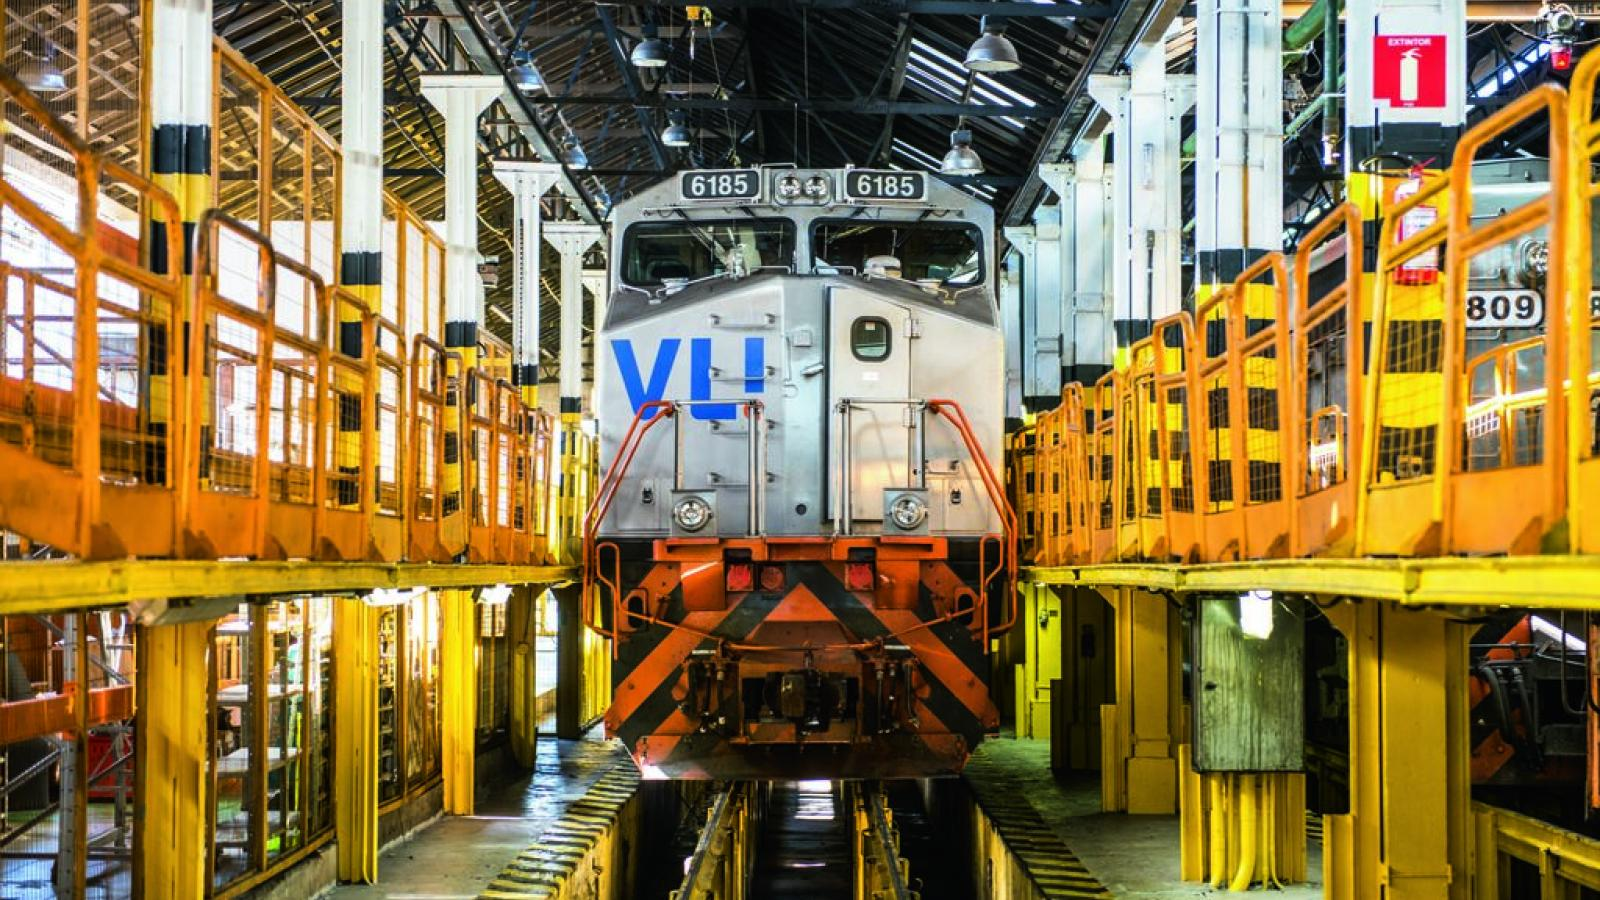 head-on view of locomotive with VLI logo